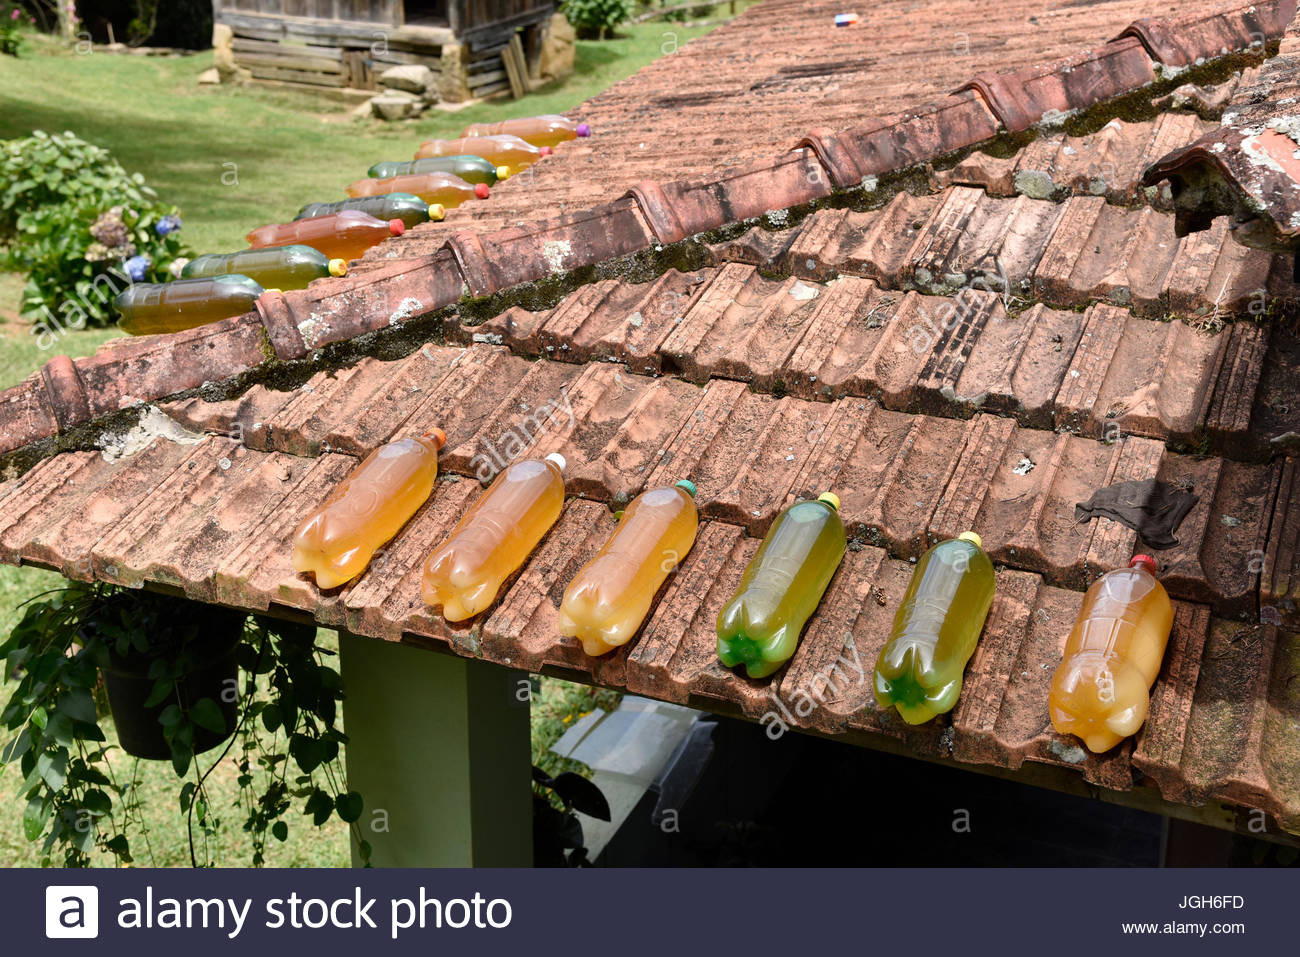 Pet bottles with honey on top of roof in a house in the neighborhood Fragária in Serra da Mantiqueira, Itamonte, - Stock Image